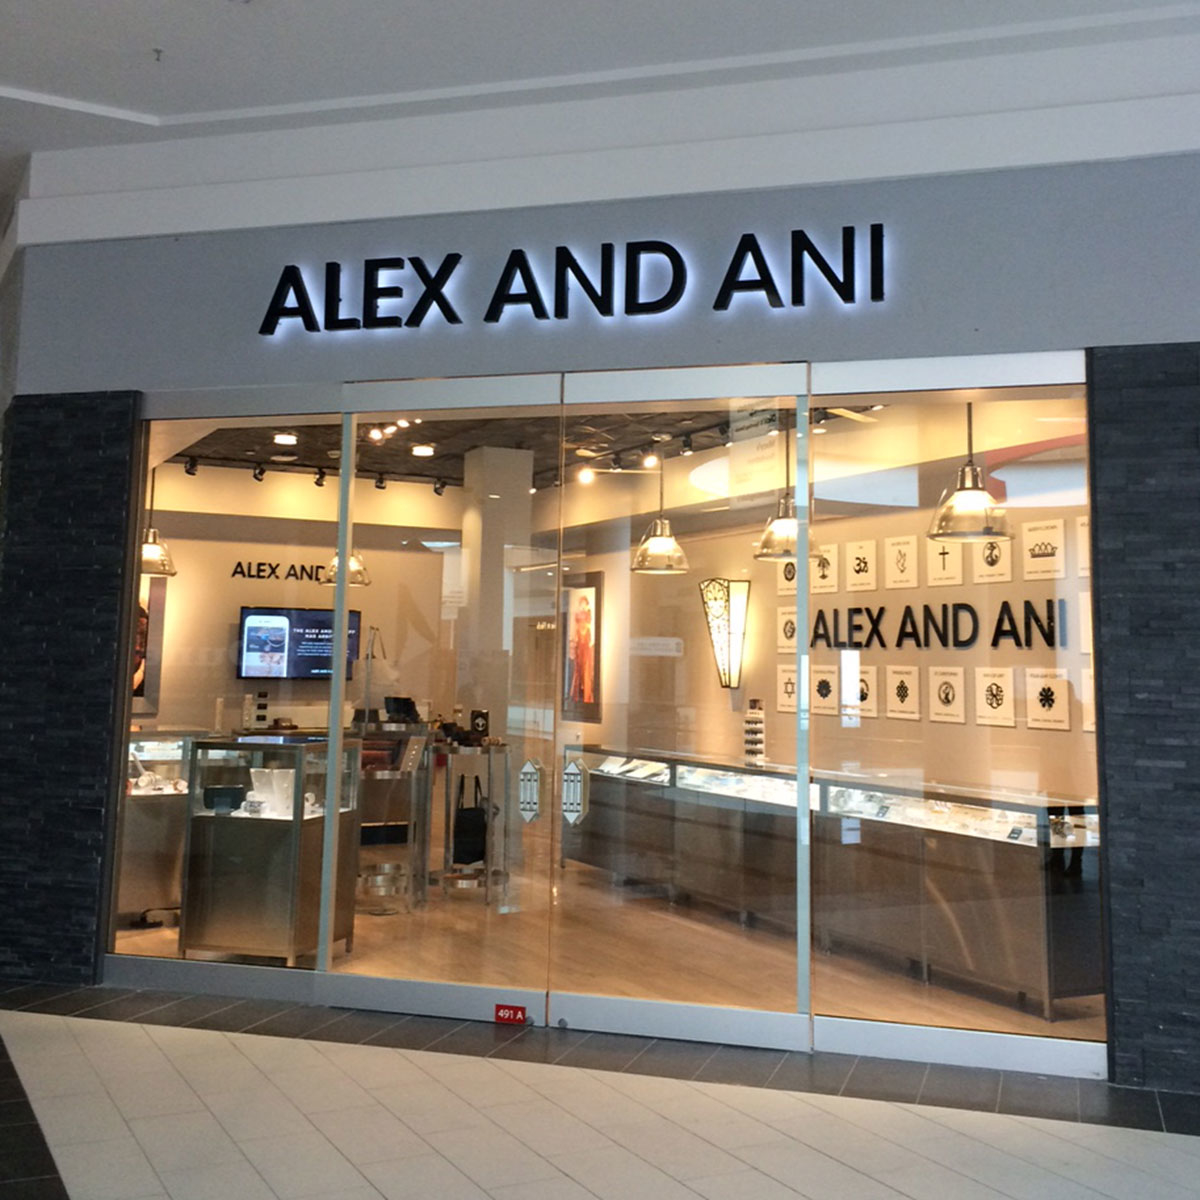 Alex and ani in garden city ny 11530 for Roosevelt field jewelry stores